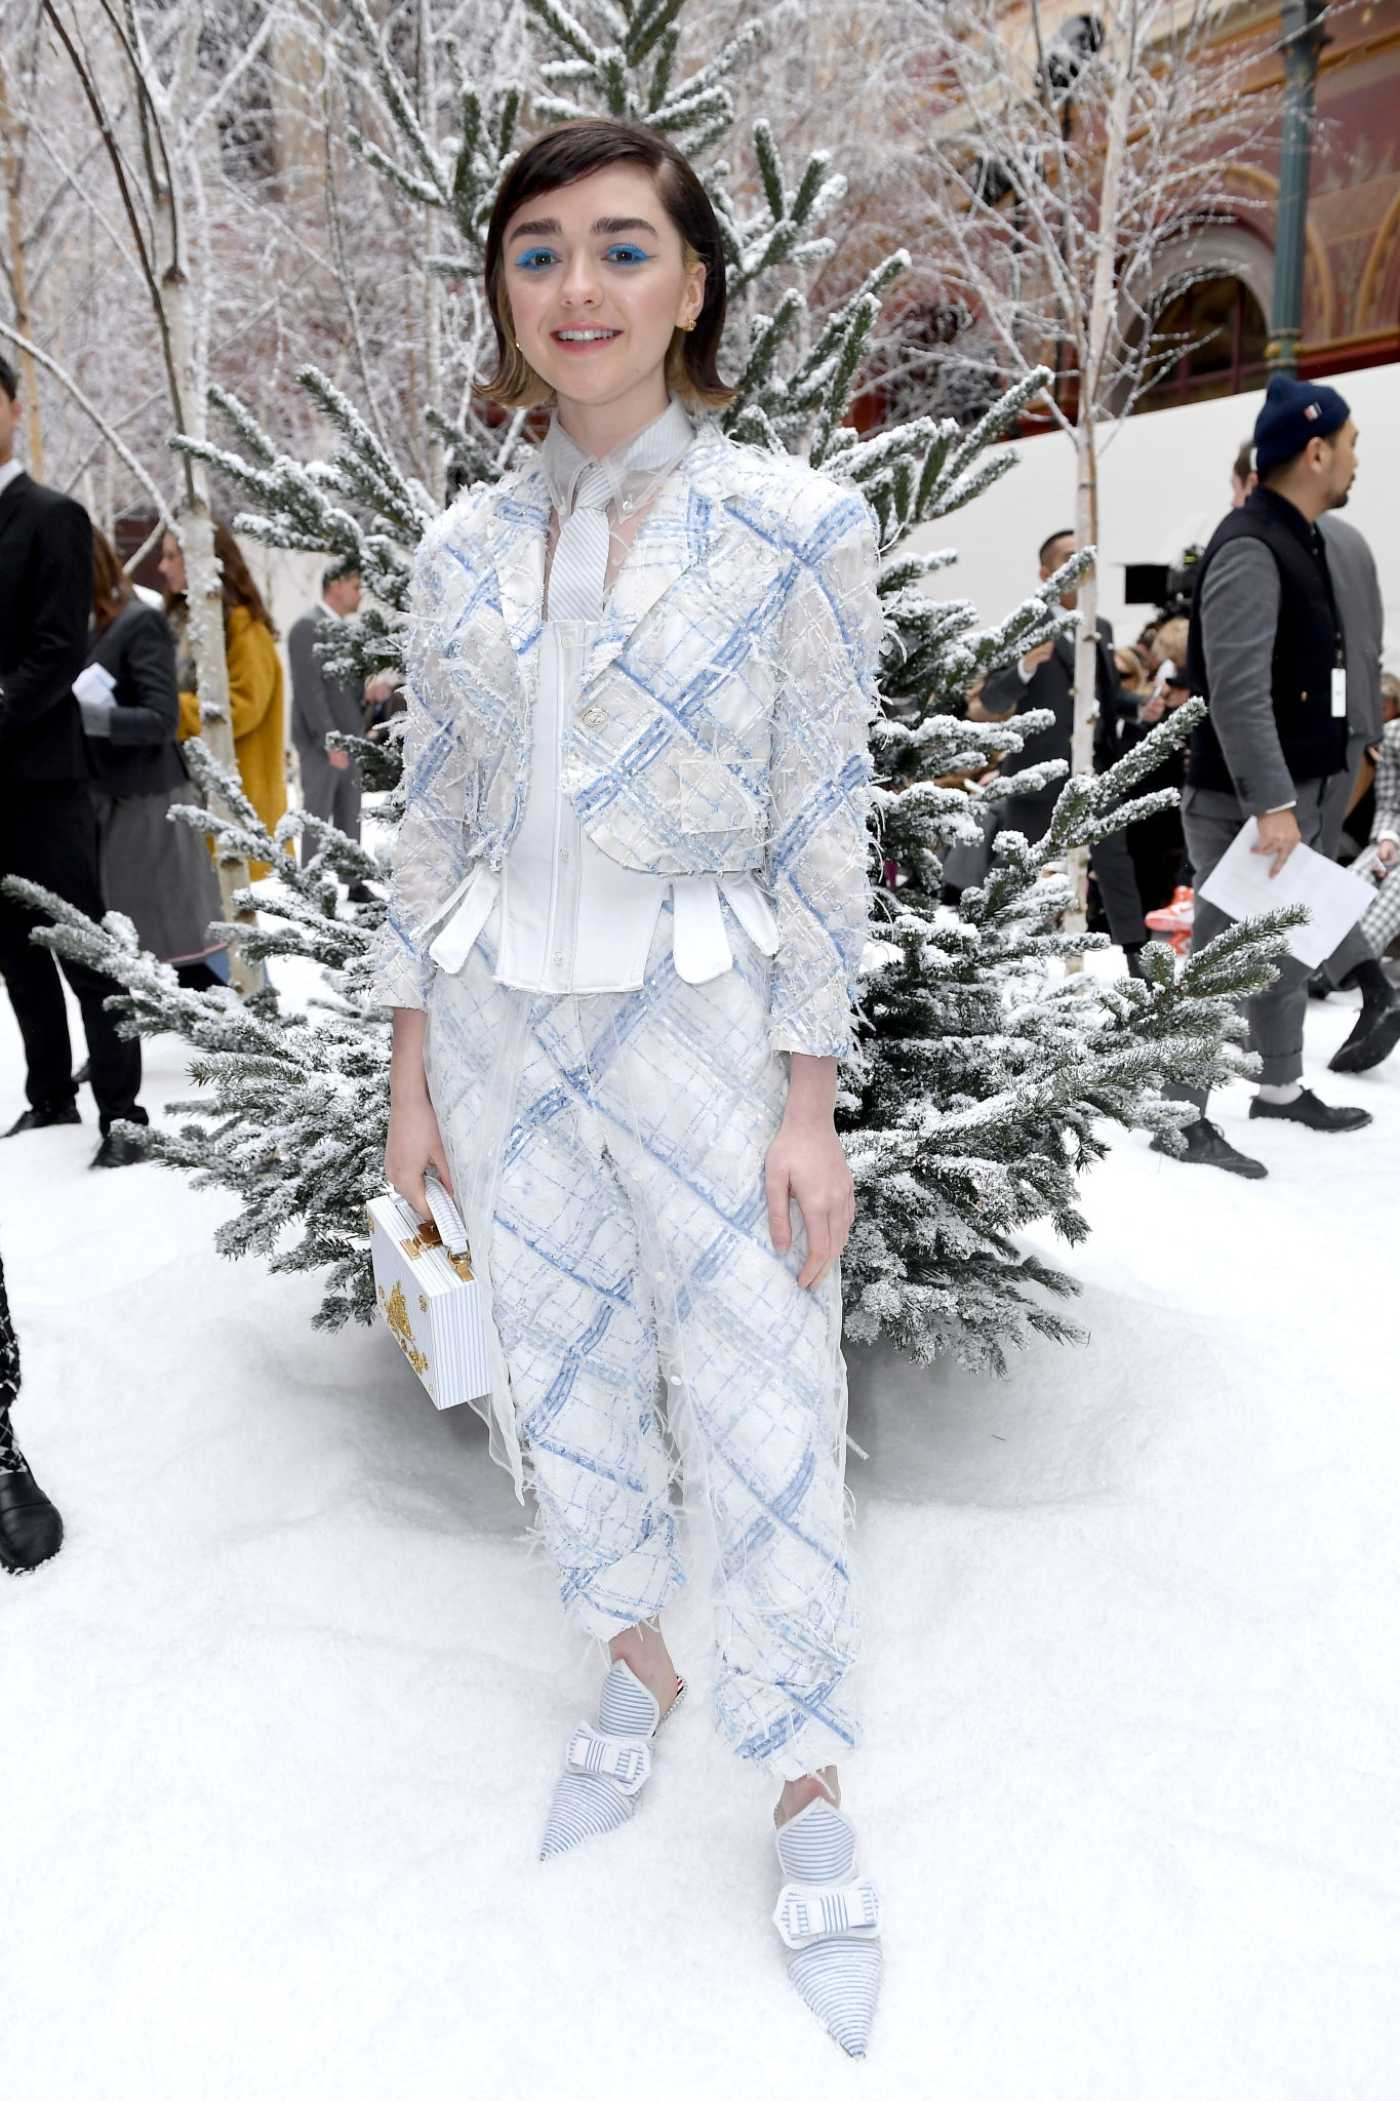 Maisie Williams Attends 2020 Thom Browne Show in Paris 03/01/2020